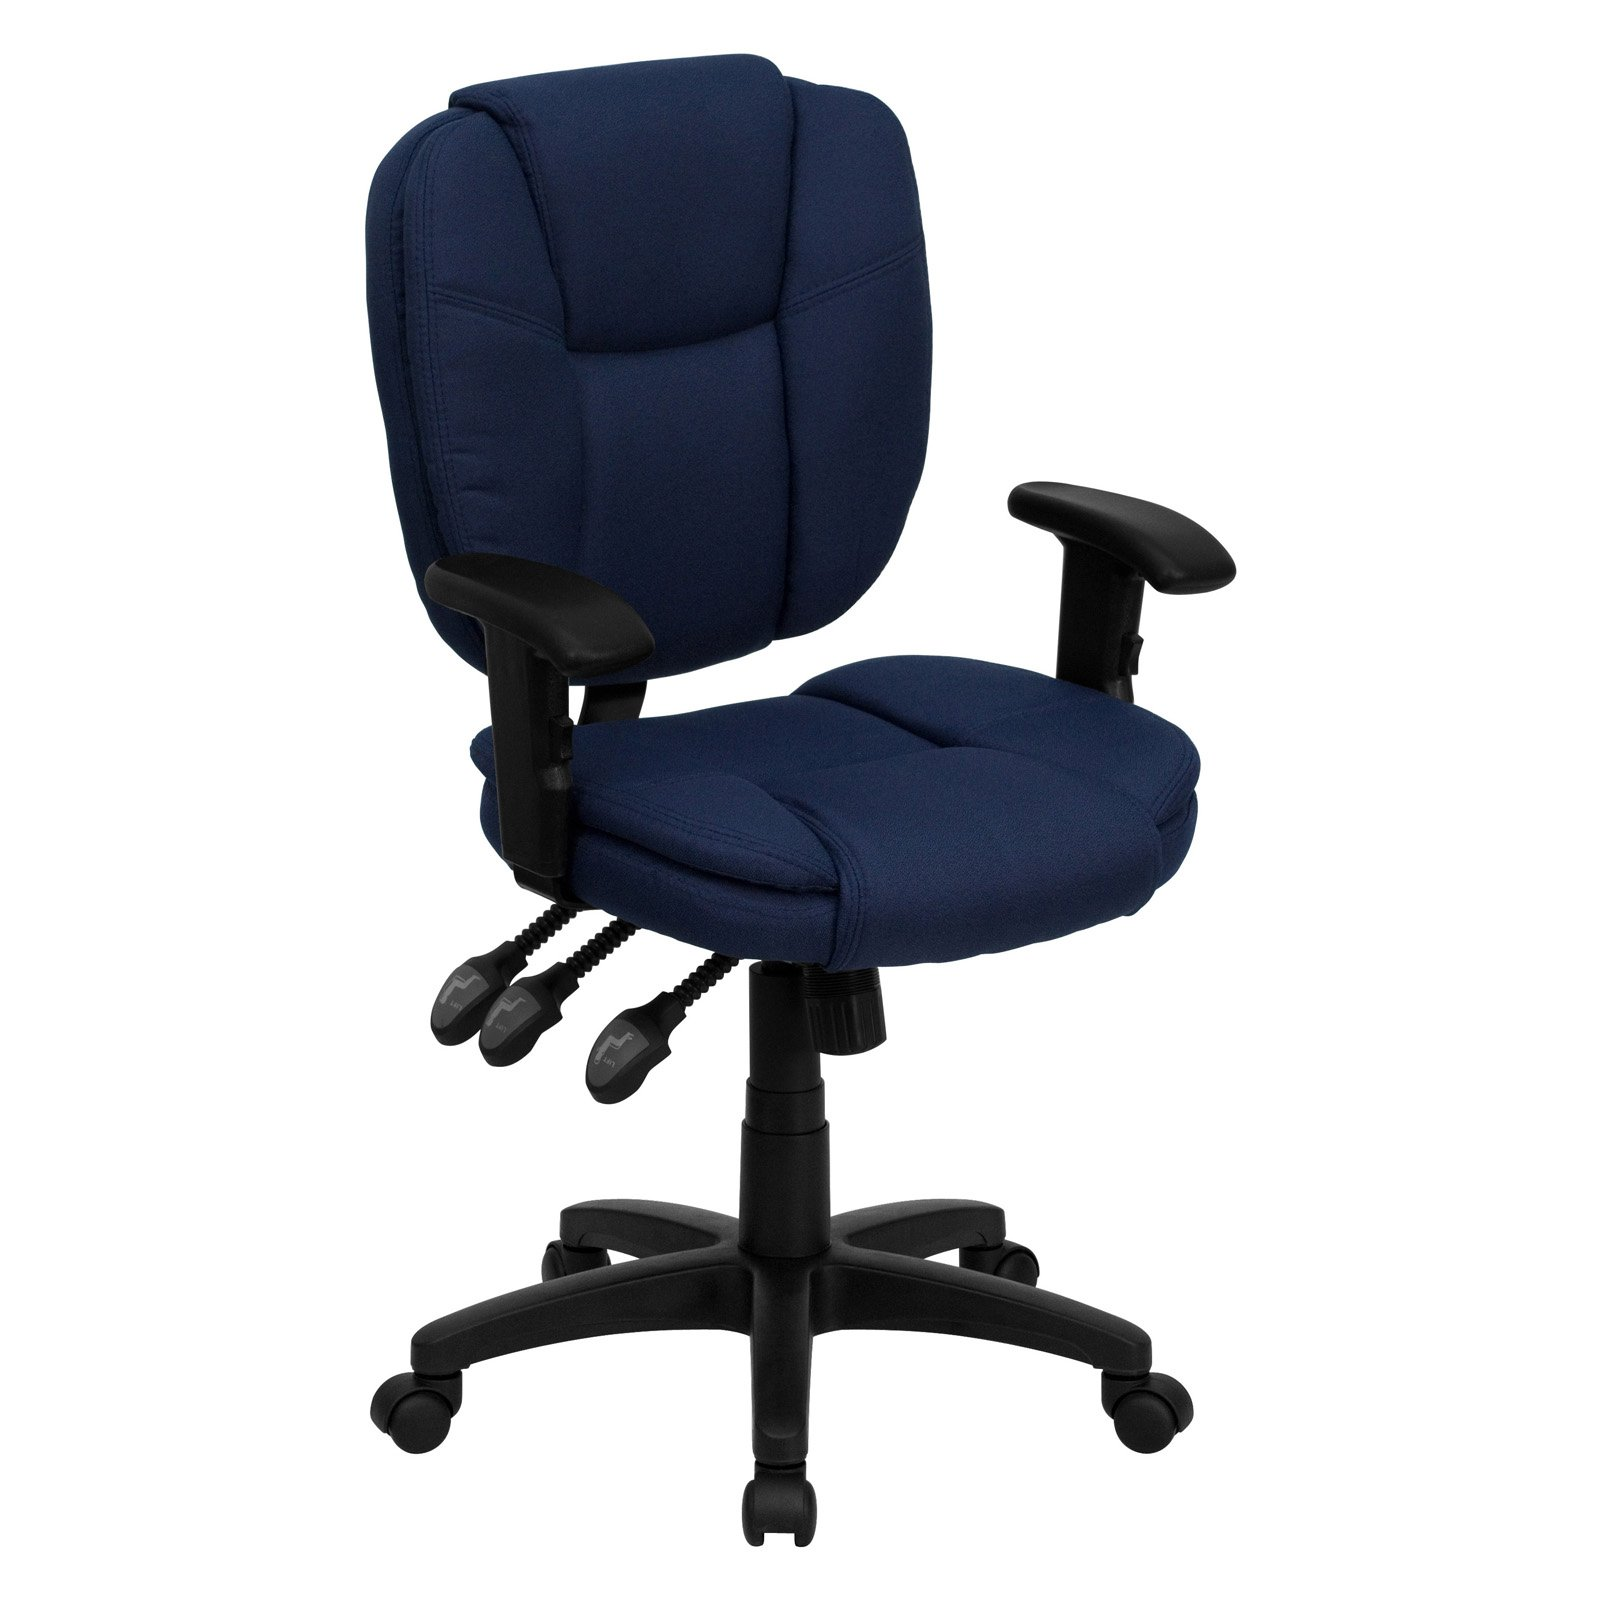 Ergonomic desk chair porthos home charlize adjustable office chair w chair the truly - Ergo kids task chair ...